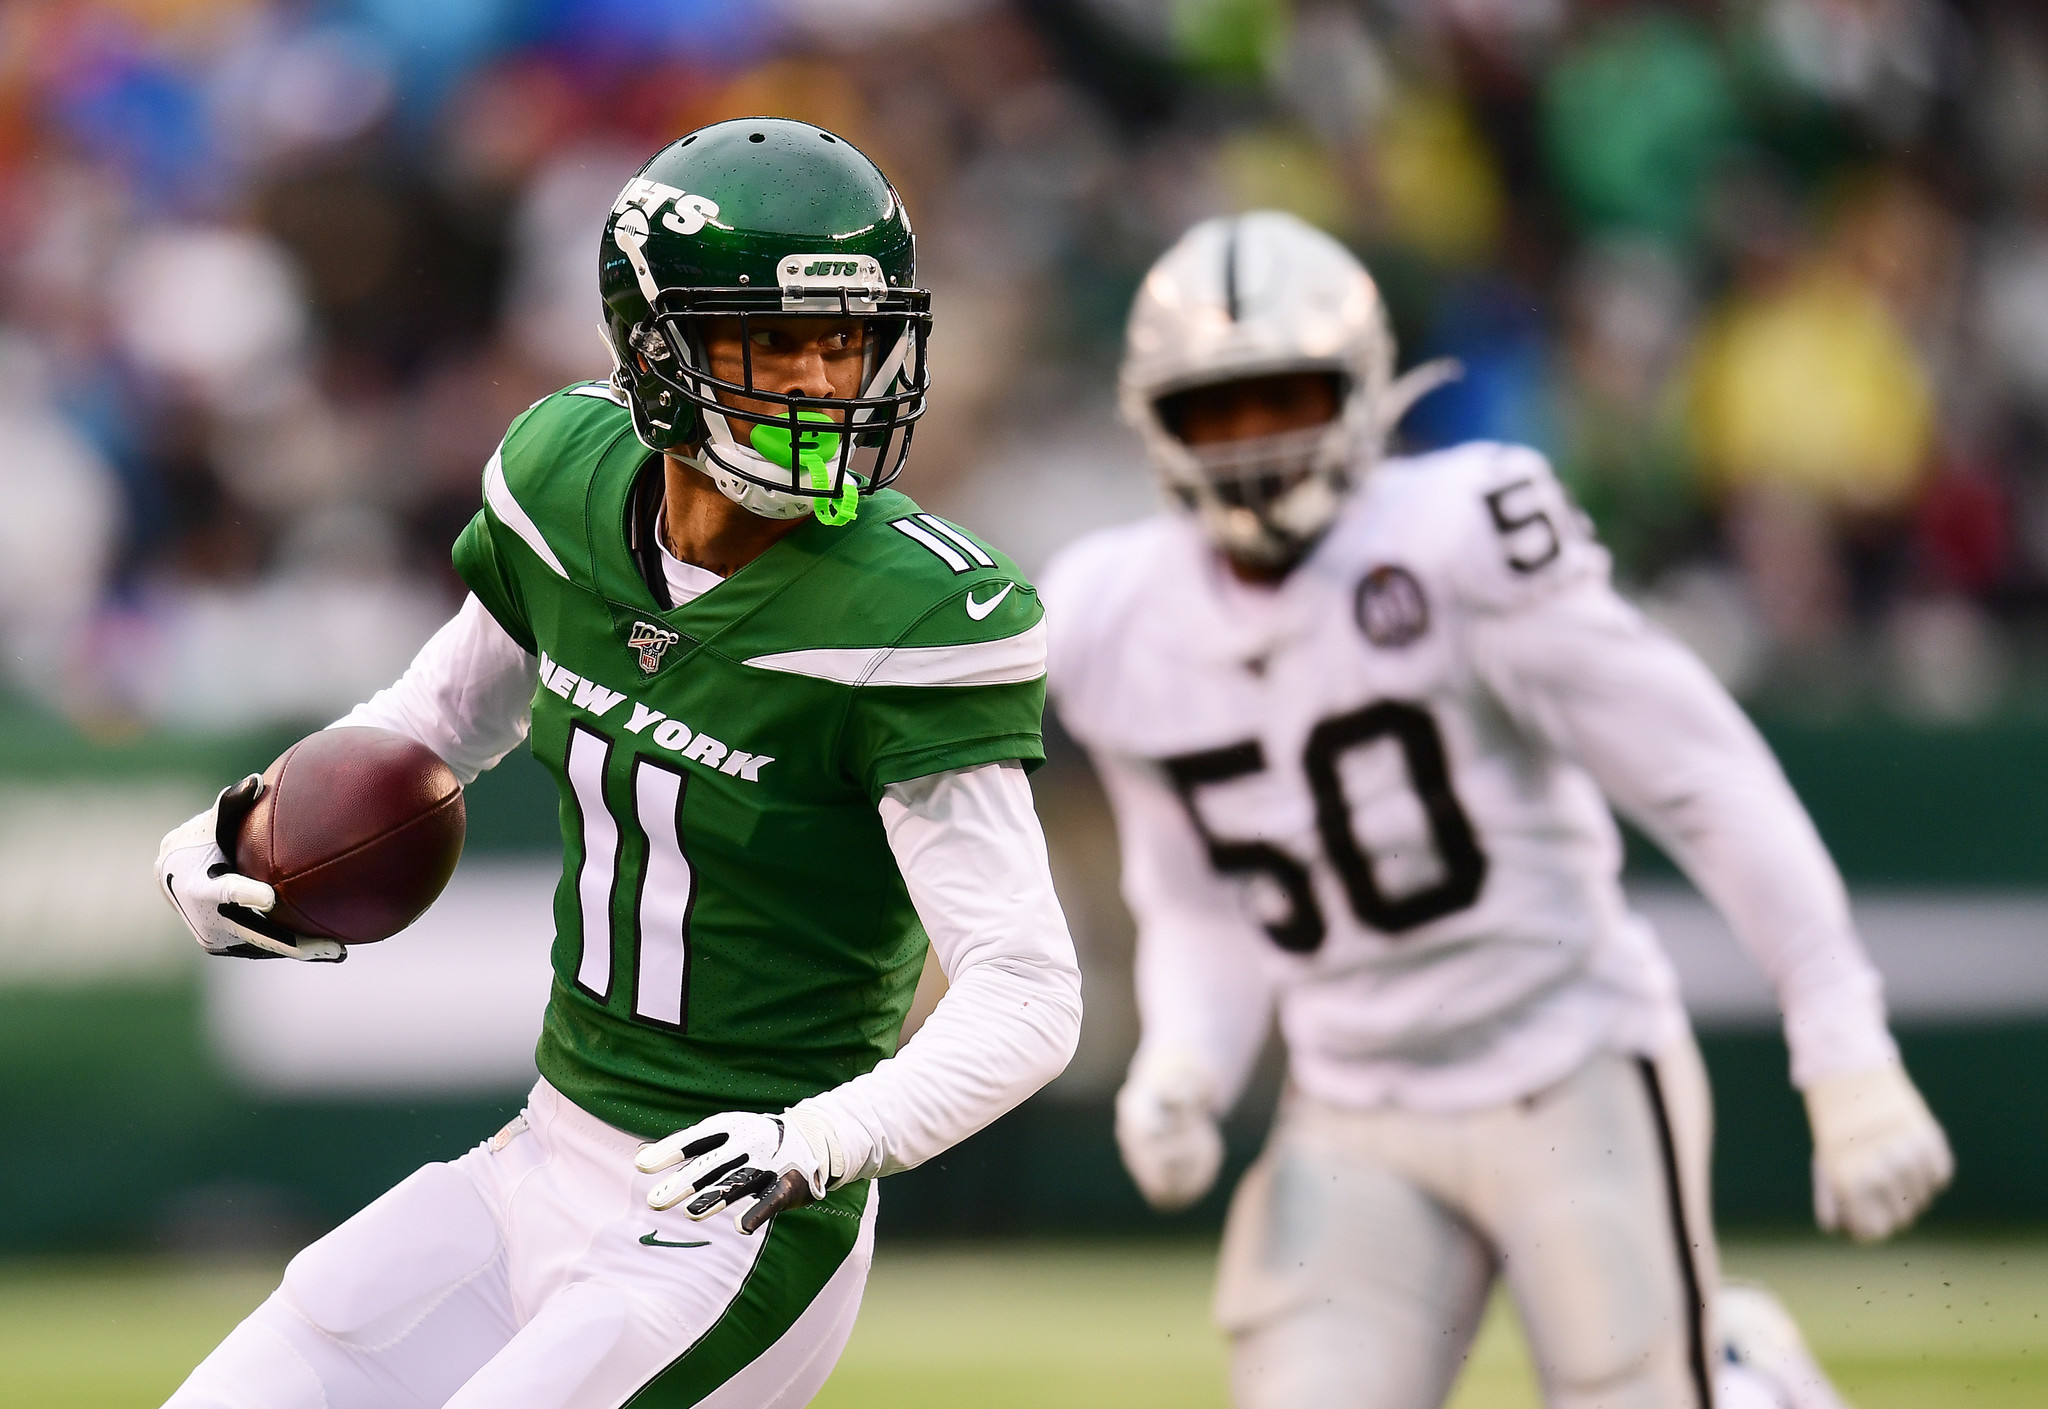 Jets Mailbag: Did the Jets make a mistake replacing Robby Anderson with Breshad Perriman?